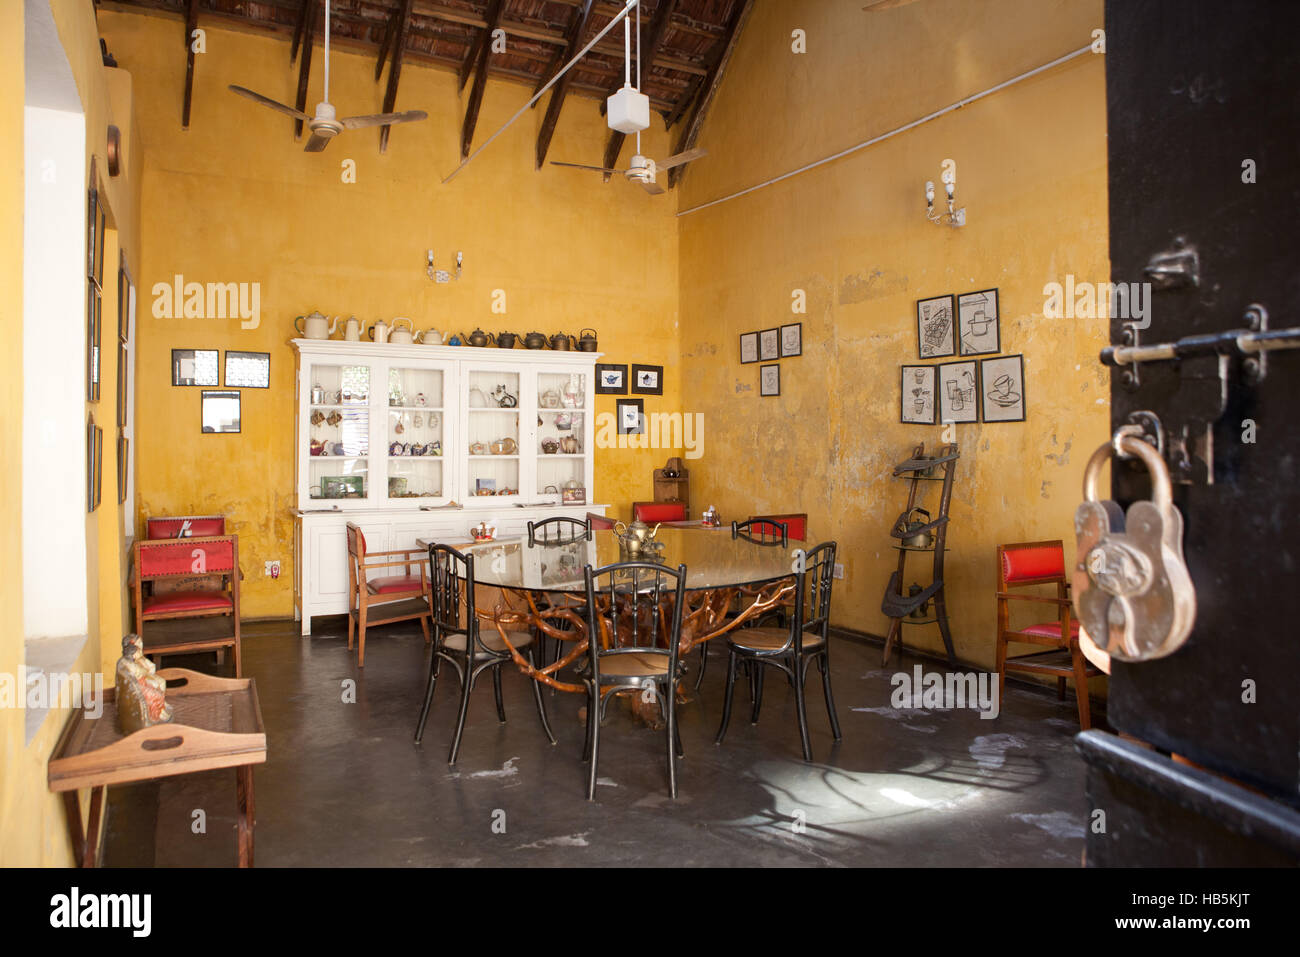 Teapot Cafe in Fort Kochi (Cochin),Kerala, India - Stock Image